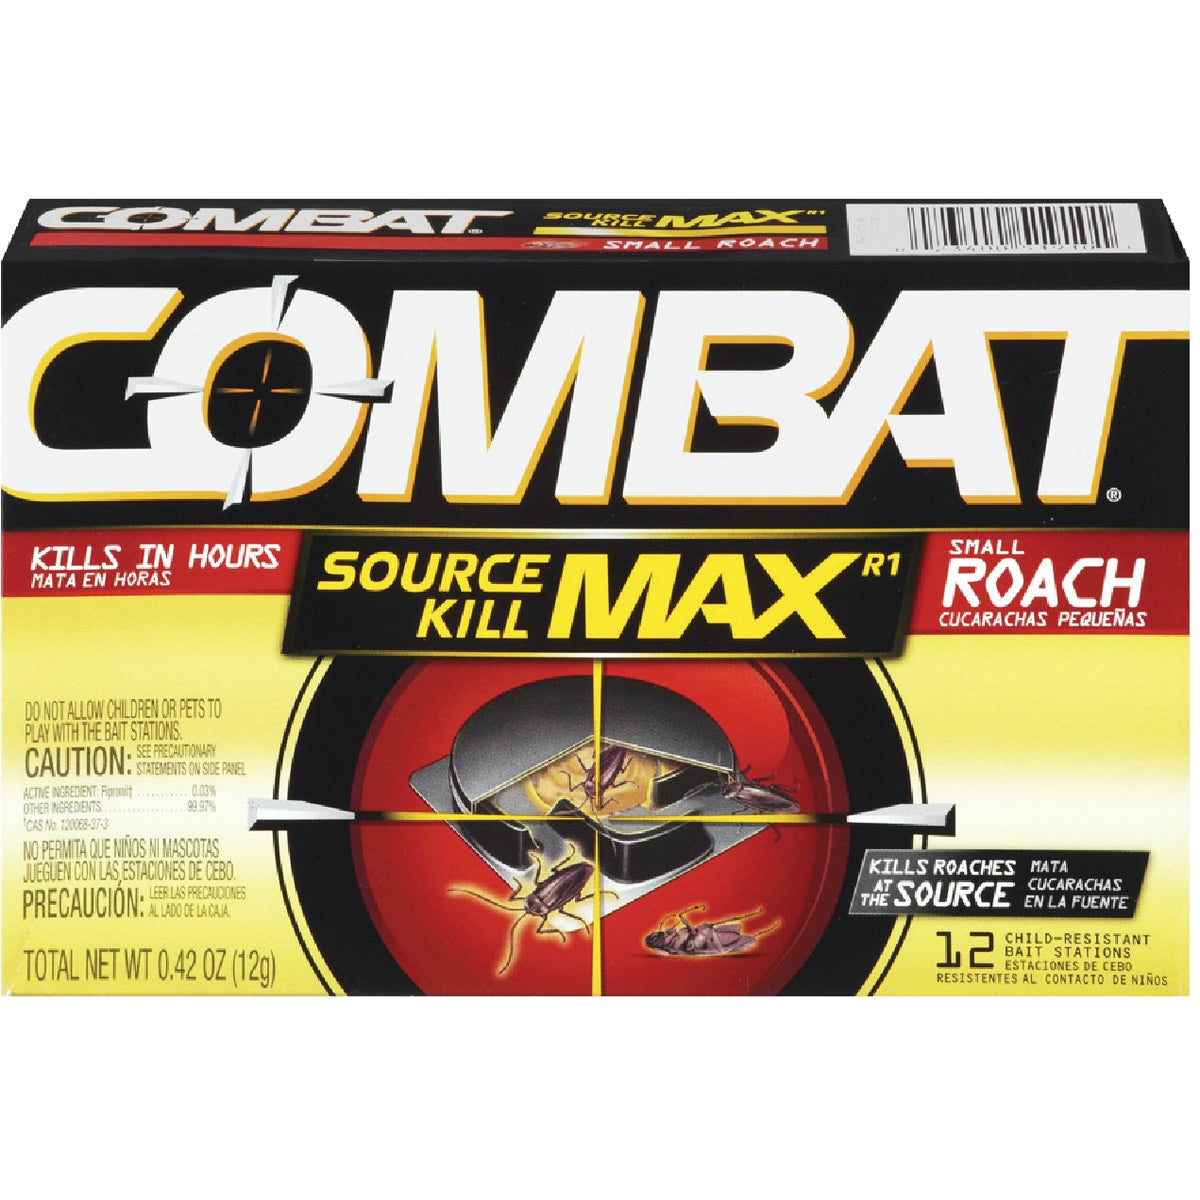 12PK SM COMBAT ROACH TRP - 41910 by Dial Corp